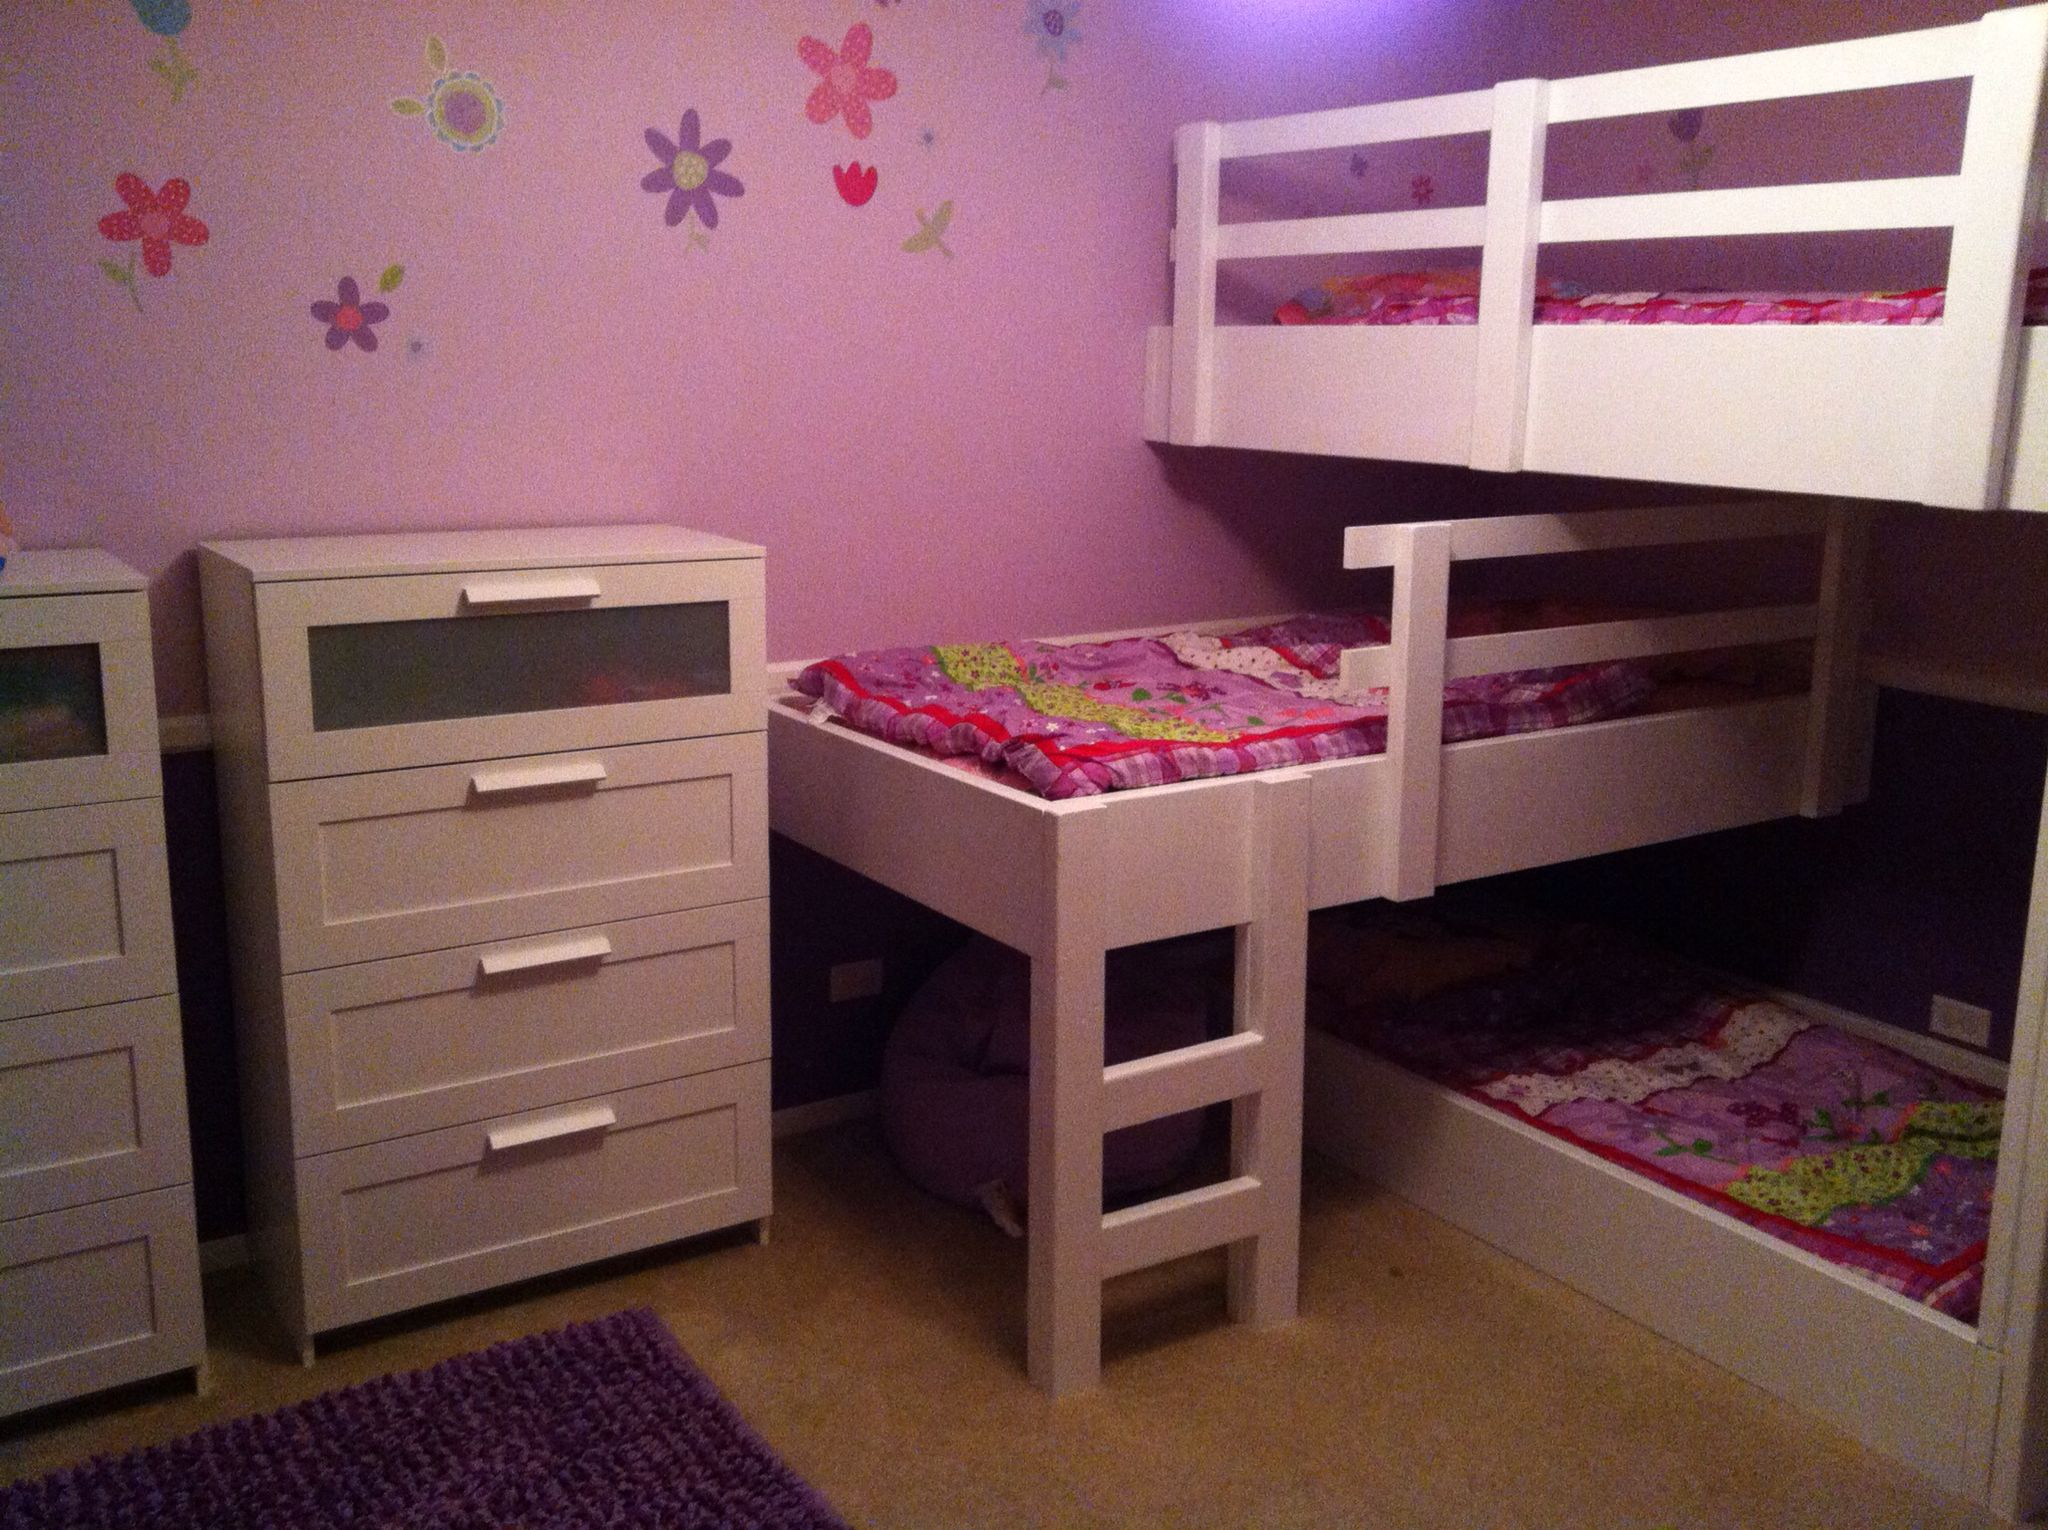 camper beds for little girls made the beds to match the furniture we bought them girls. Black Bedroom Furniture Sets. Home Design Ideas